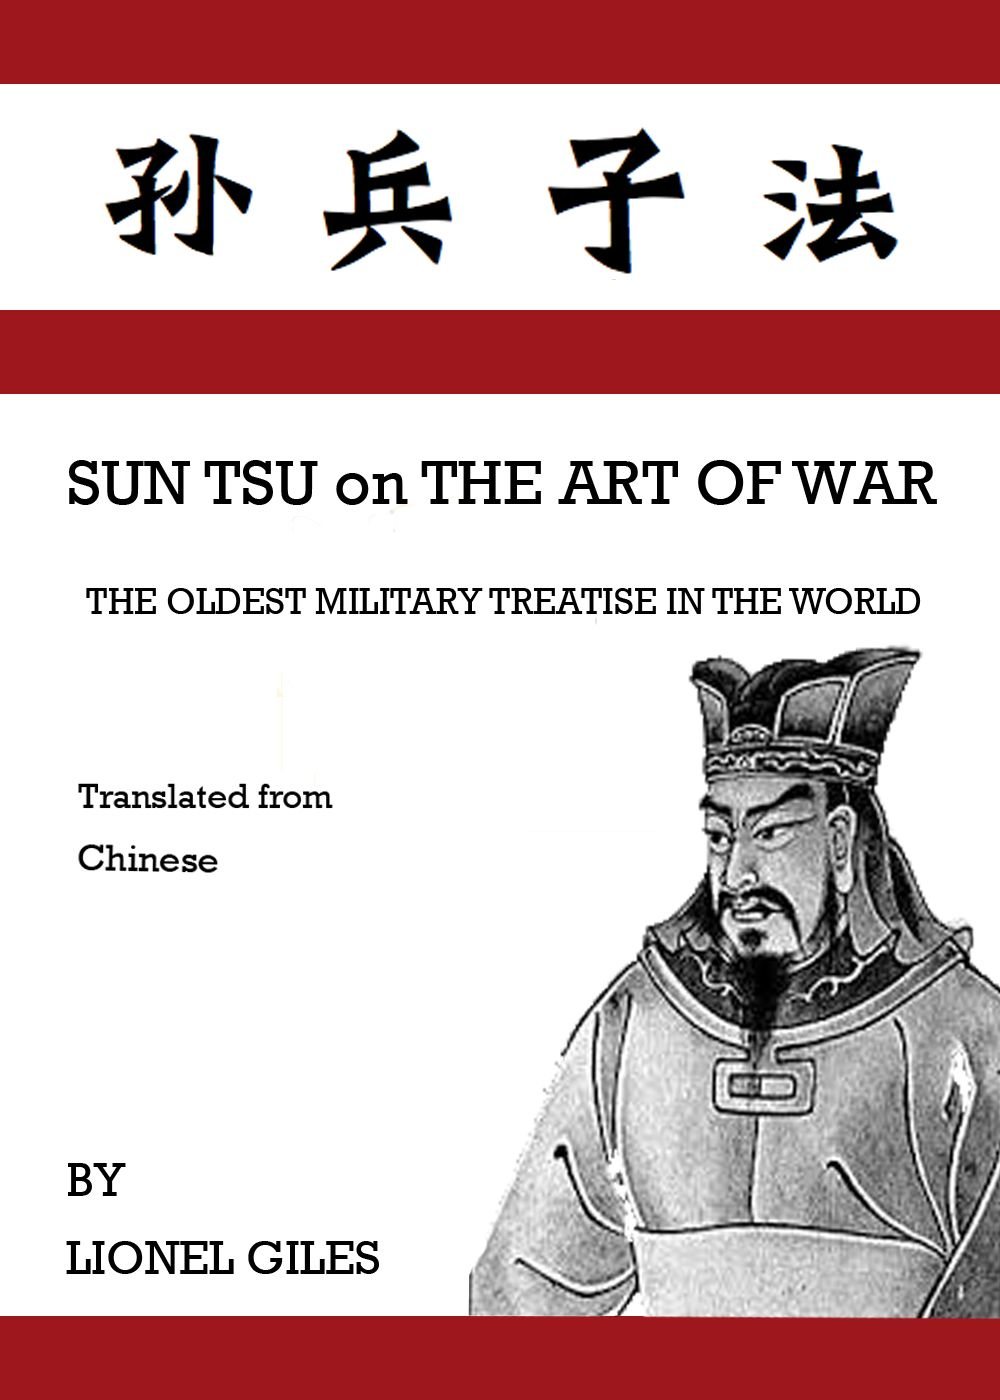 sun tzu art of war for Sun tzu art of war quotes back to top unhappy is the fate of one who tries to win his battles and succeed in his attacks without cultivating the spirit of enterprise, for the result is waste of time and general stagnation.